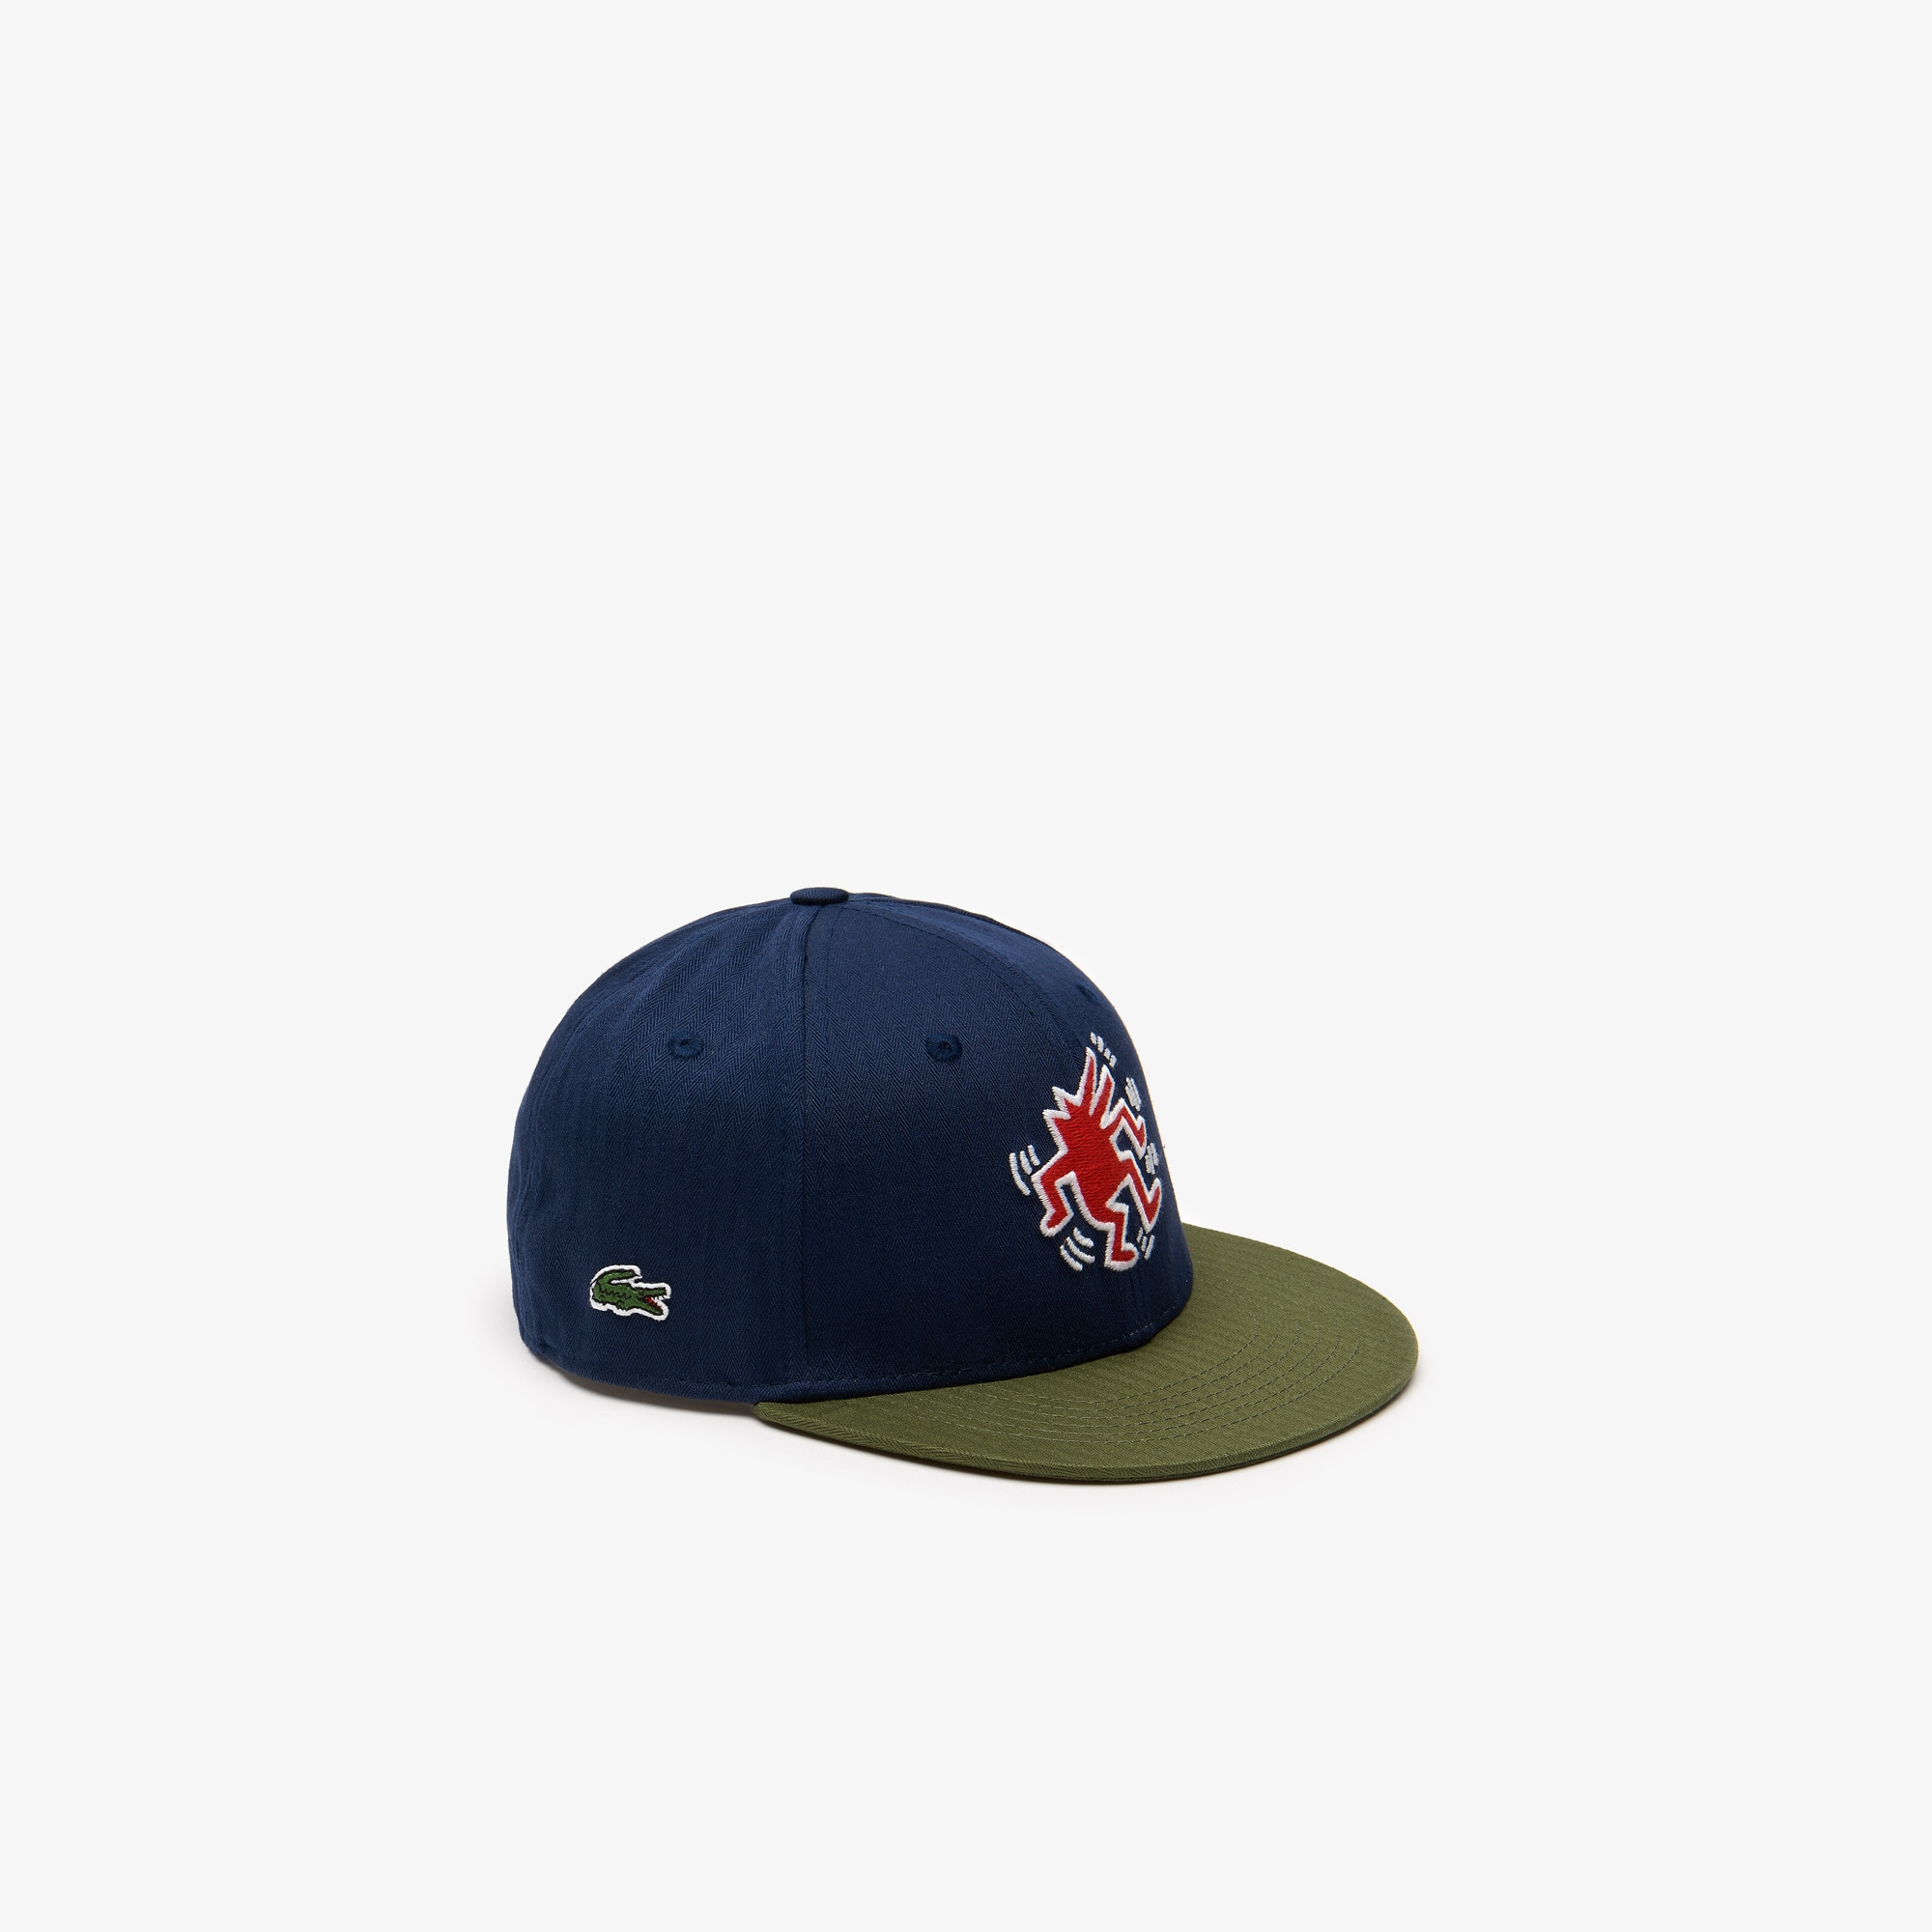 630301566d Casquette bicolore avec broderie Collab Keith Haring